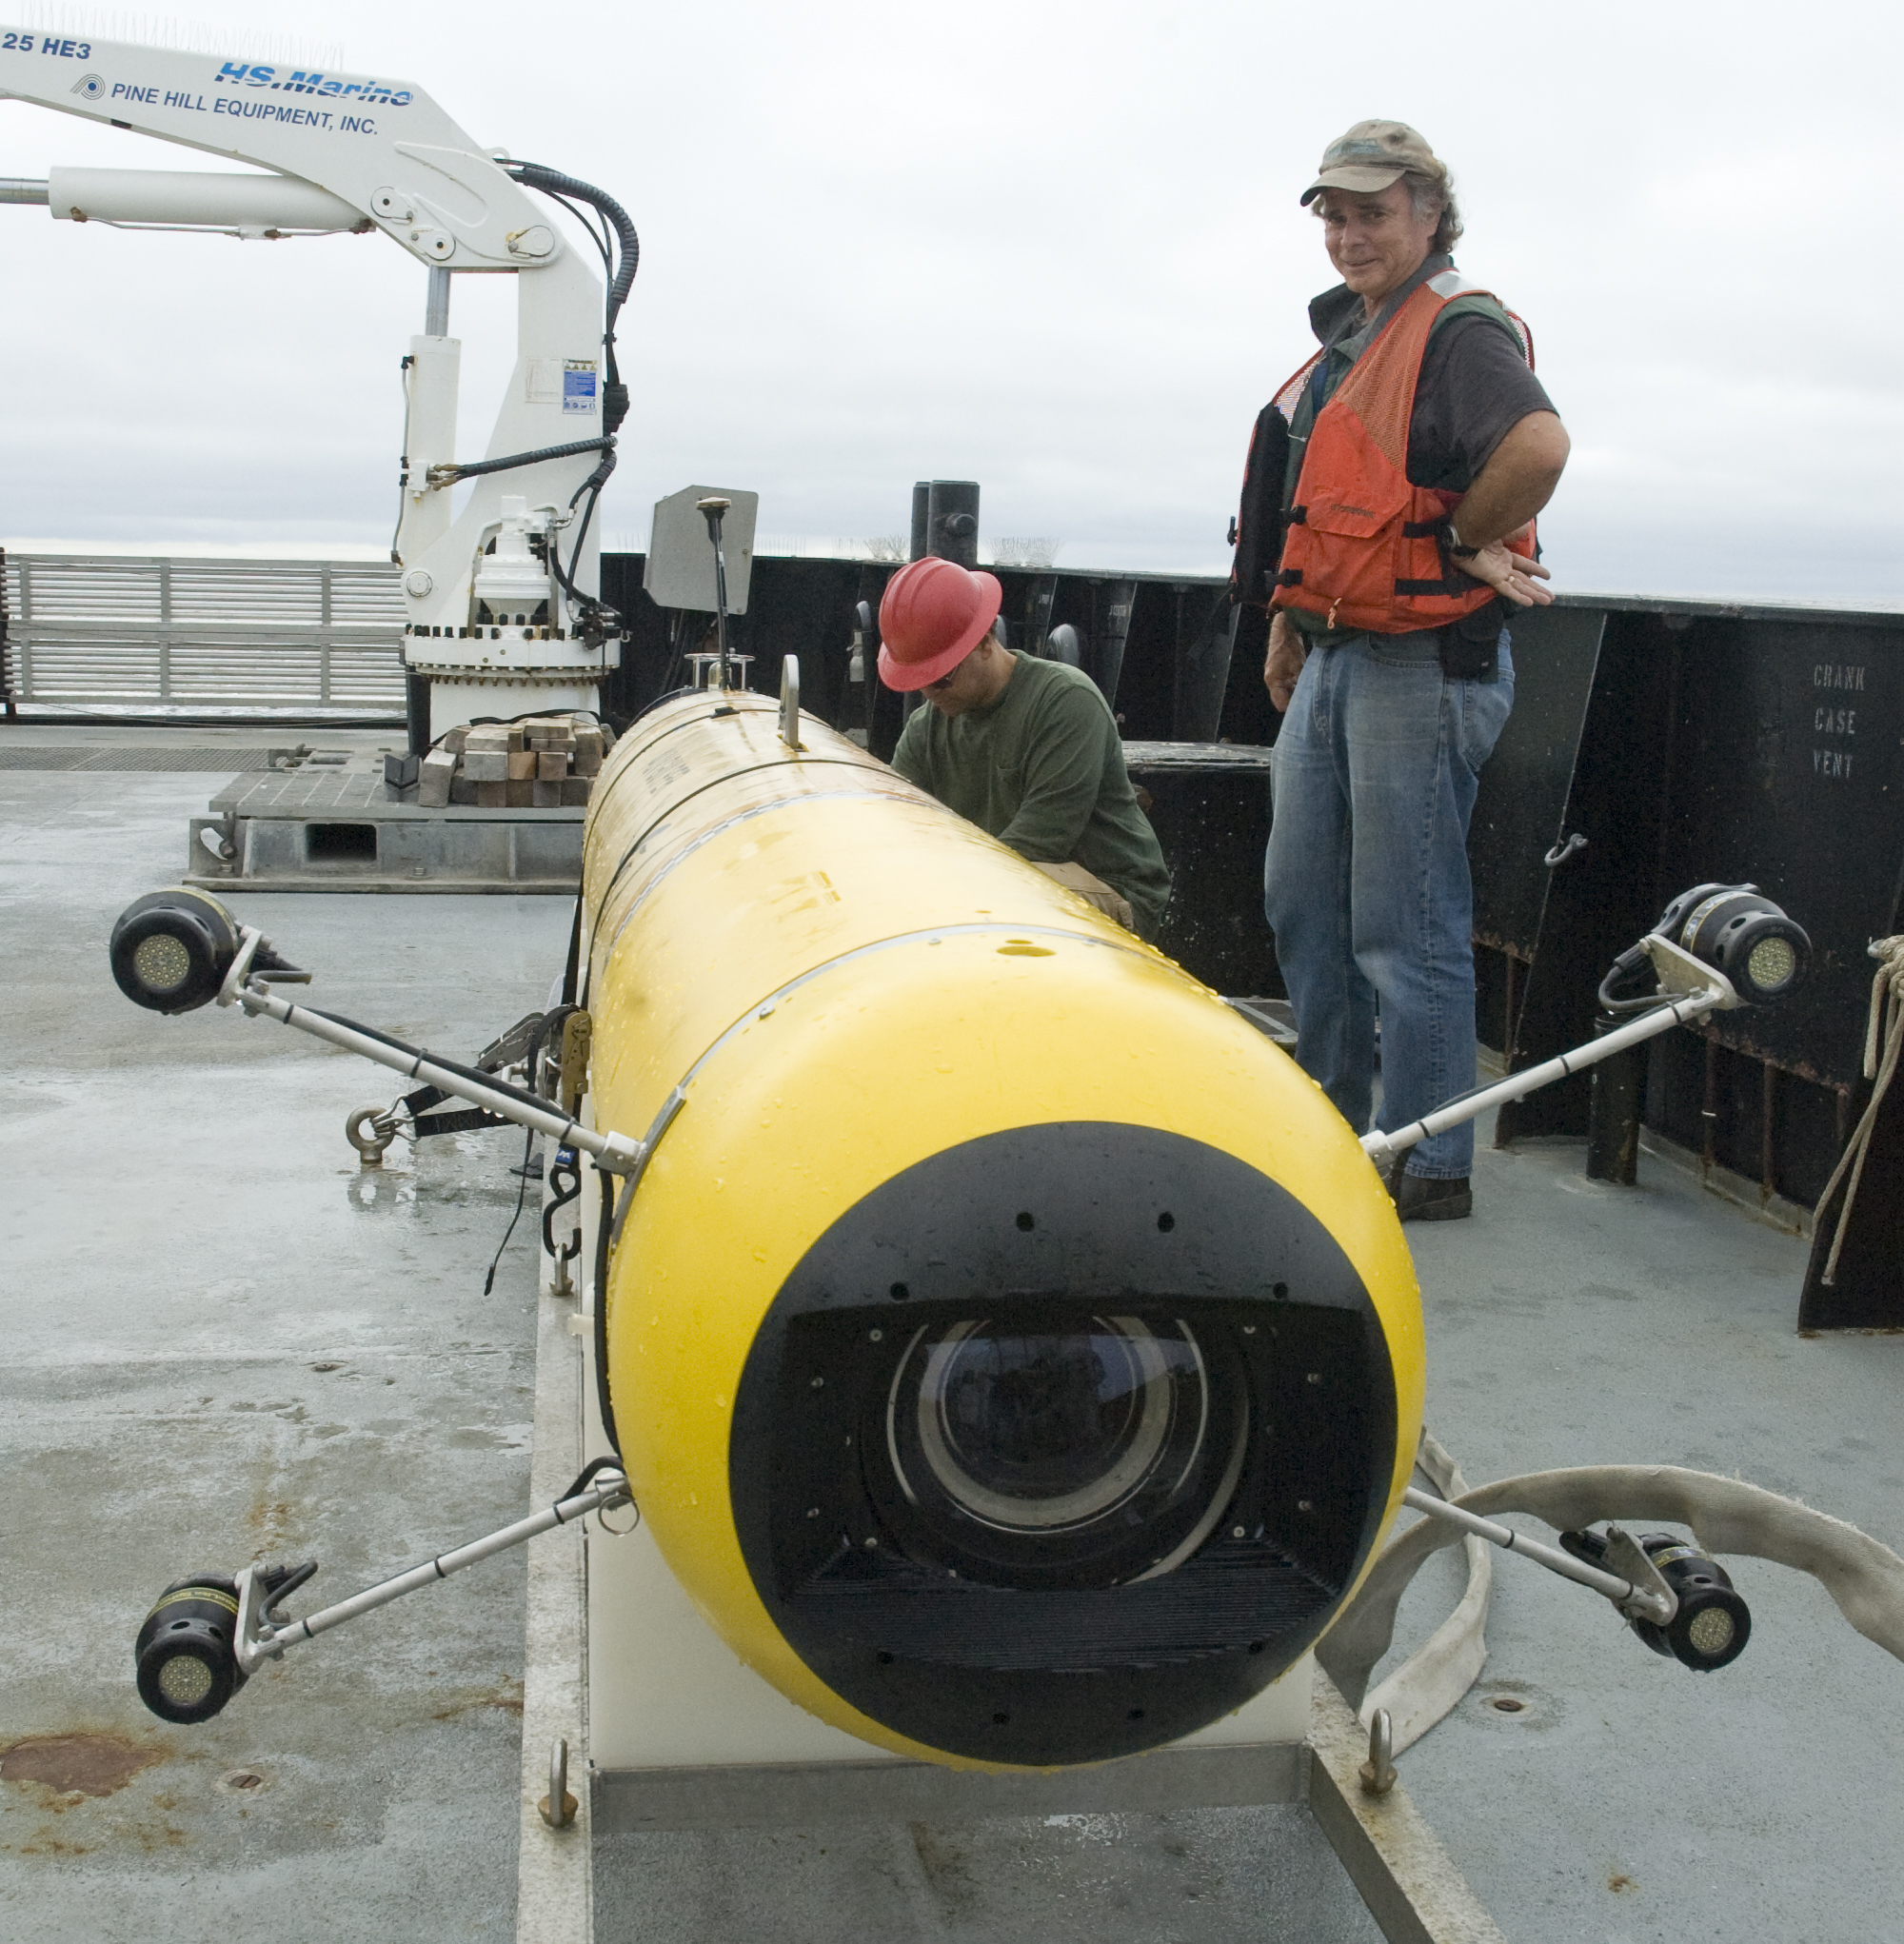 Research Specialist Kim Reisenbichler and AUV Group Leader Hans Thomas look over the i2MAP AUV as it sits on its cradle on the deck of the R/V <em>Rachel Carson</em>.